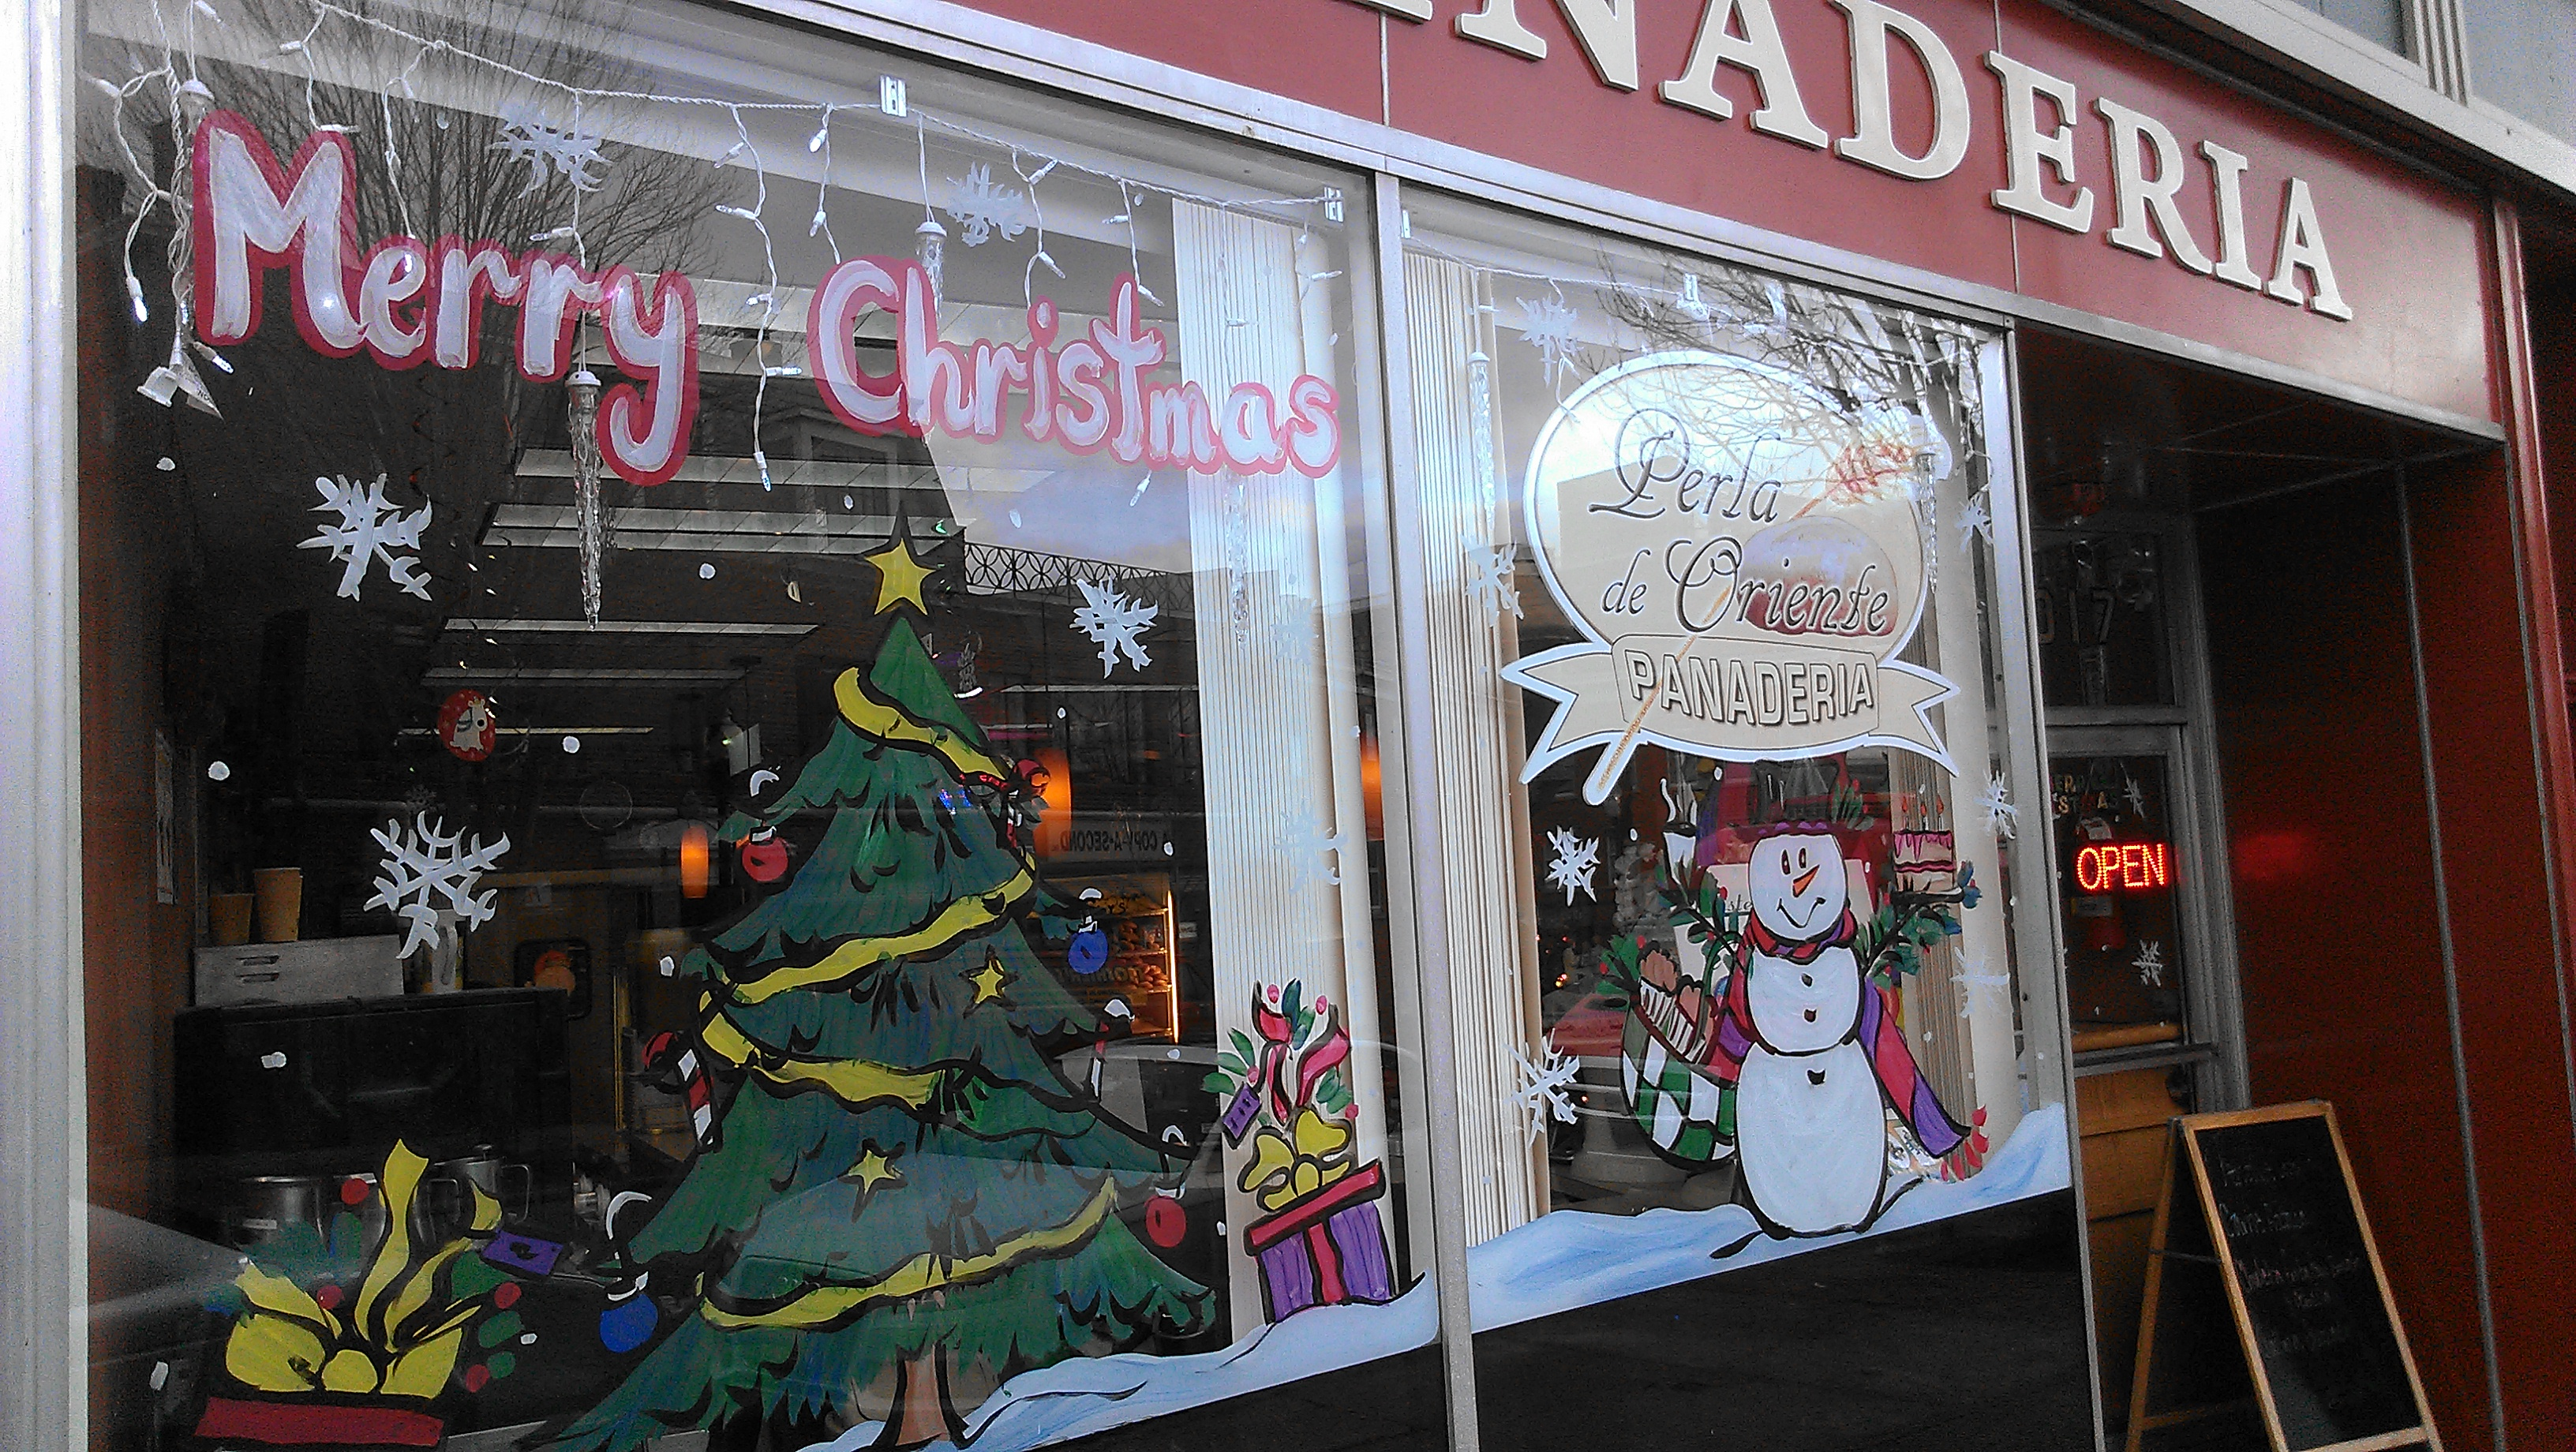 One of dozens of festive window displays in downtown Peekskill brightens this holiday season.